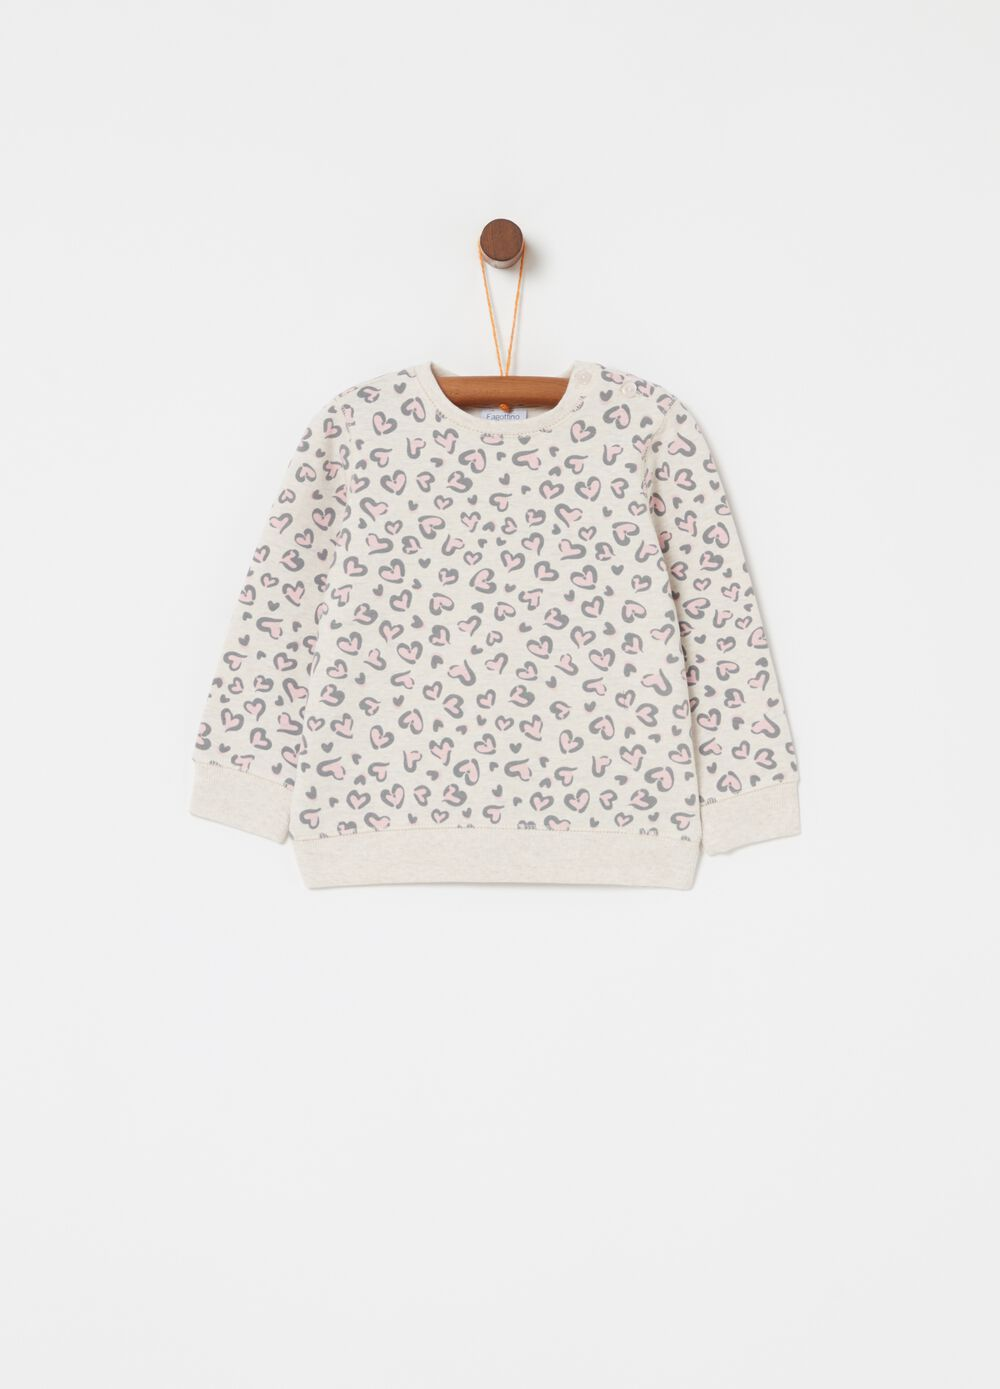 Sweatshirt in stretch cotton with hearts pattern